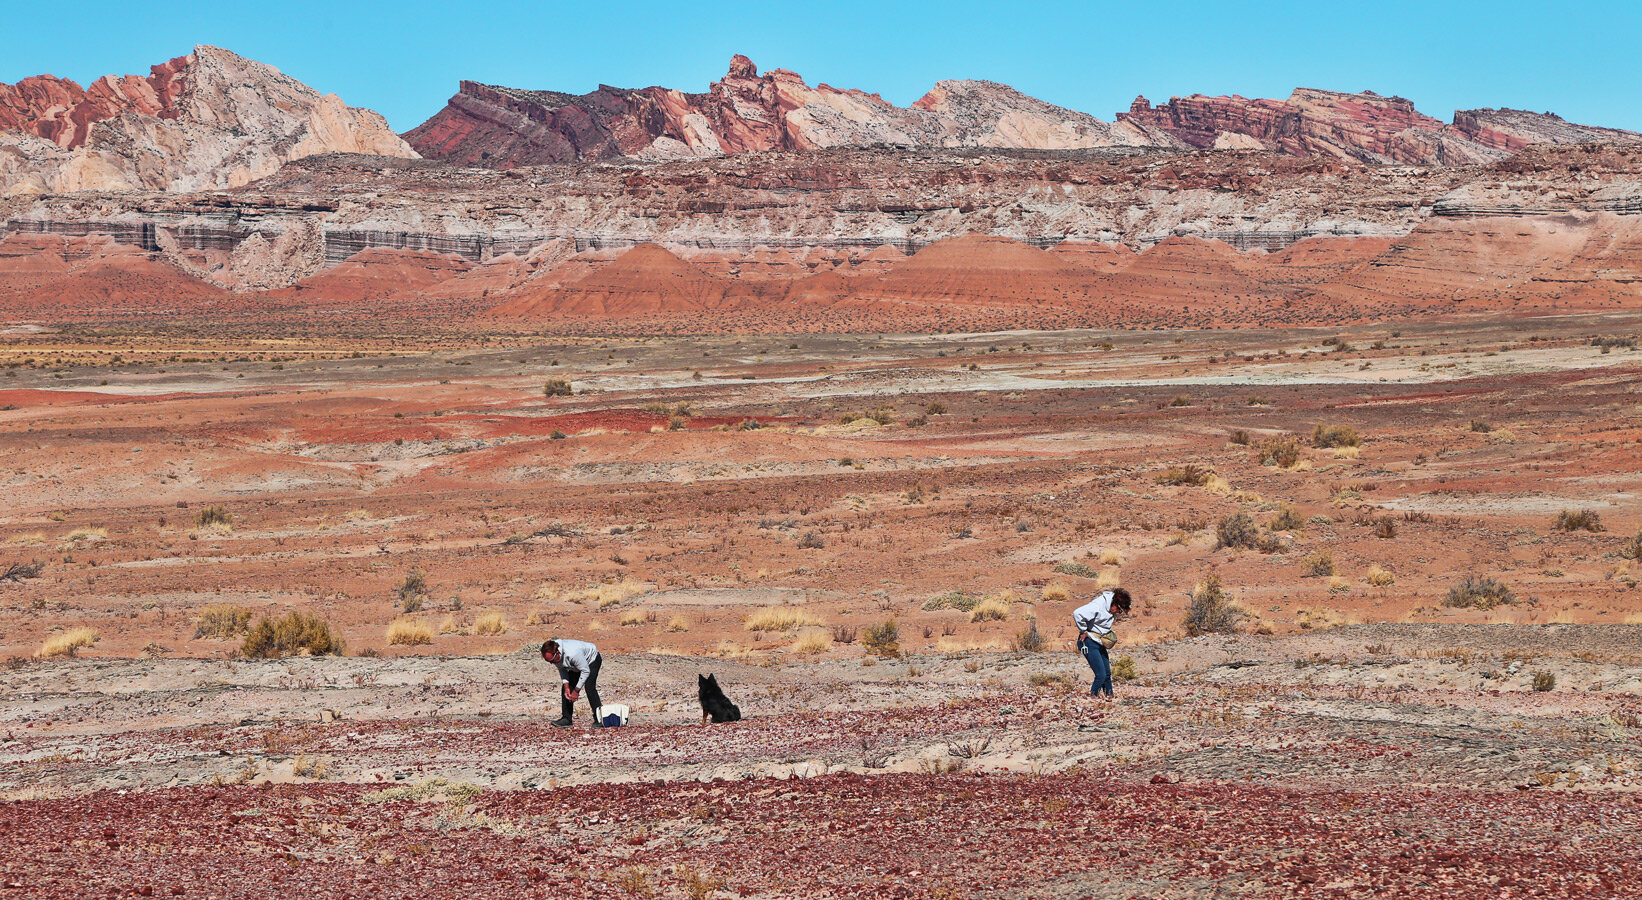 The agate is weathering out of the Jurassic-age Carmel Formation on the east side of the San Rafael Swell.